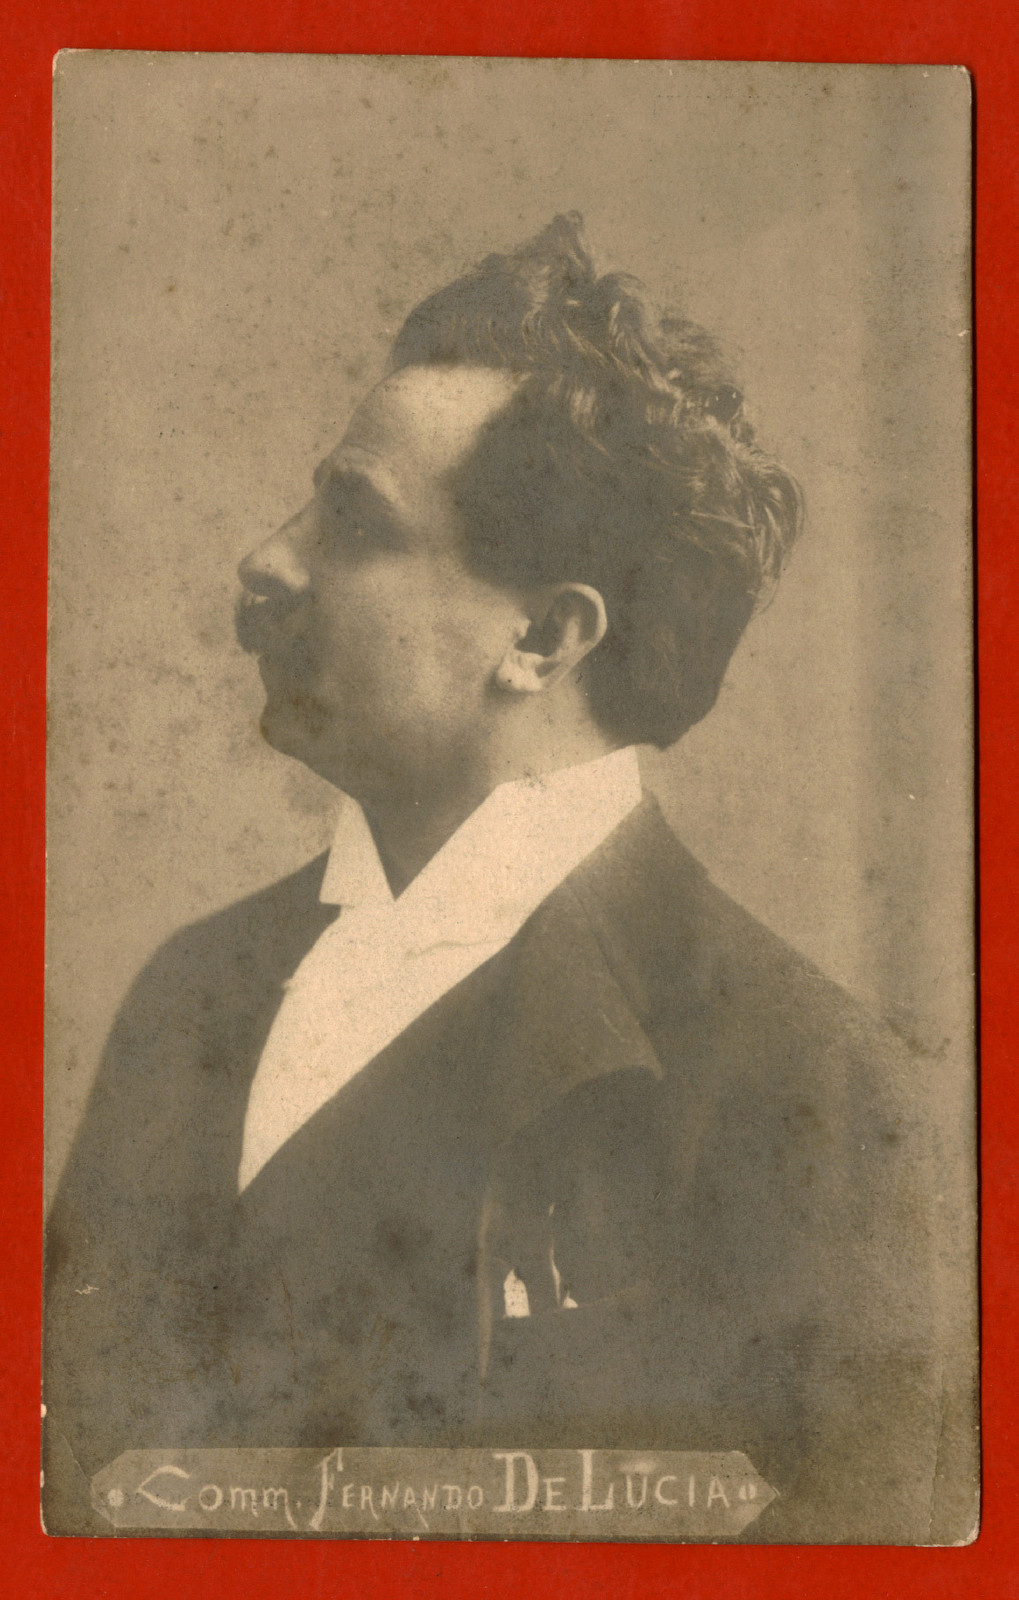 FERNANDO DE LUCIA (1860-1925) PHONOTYPE RECORDS CD